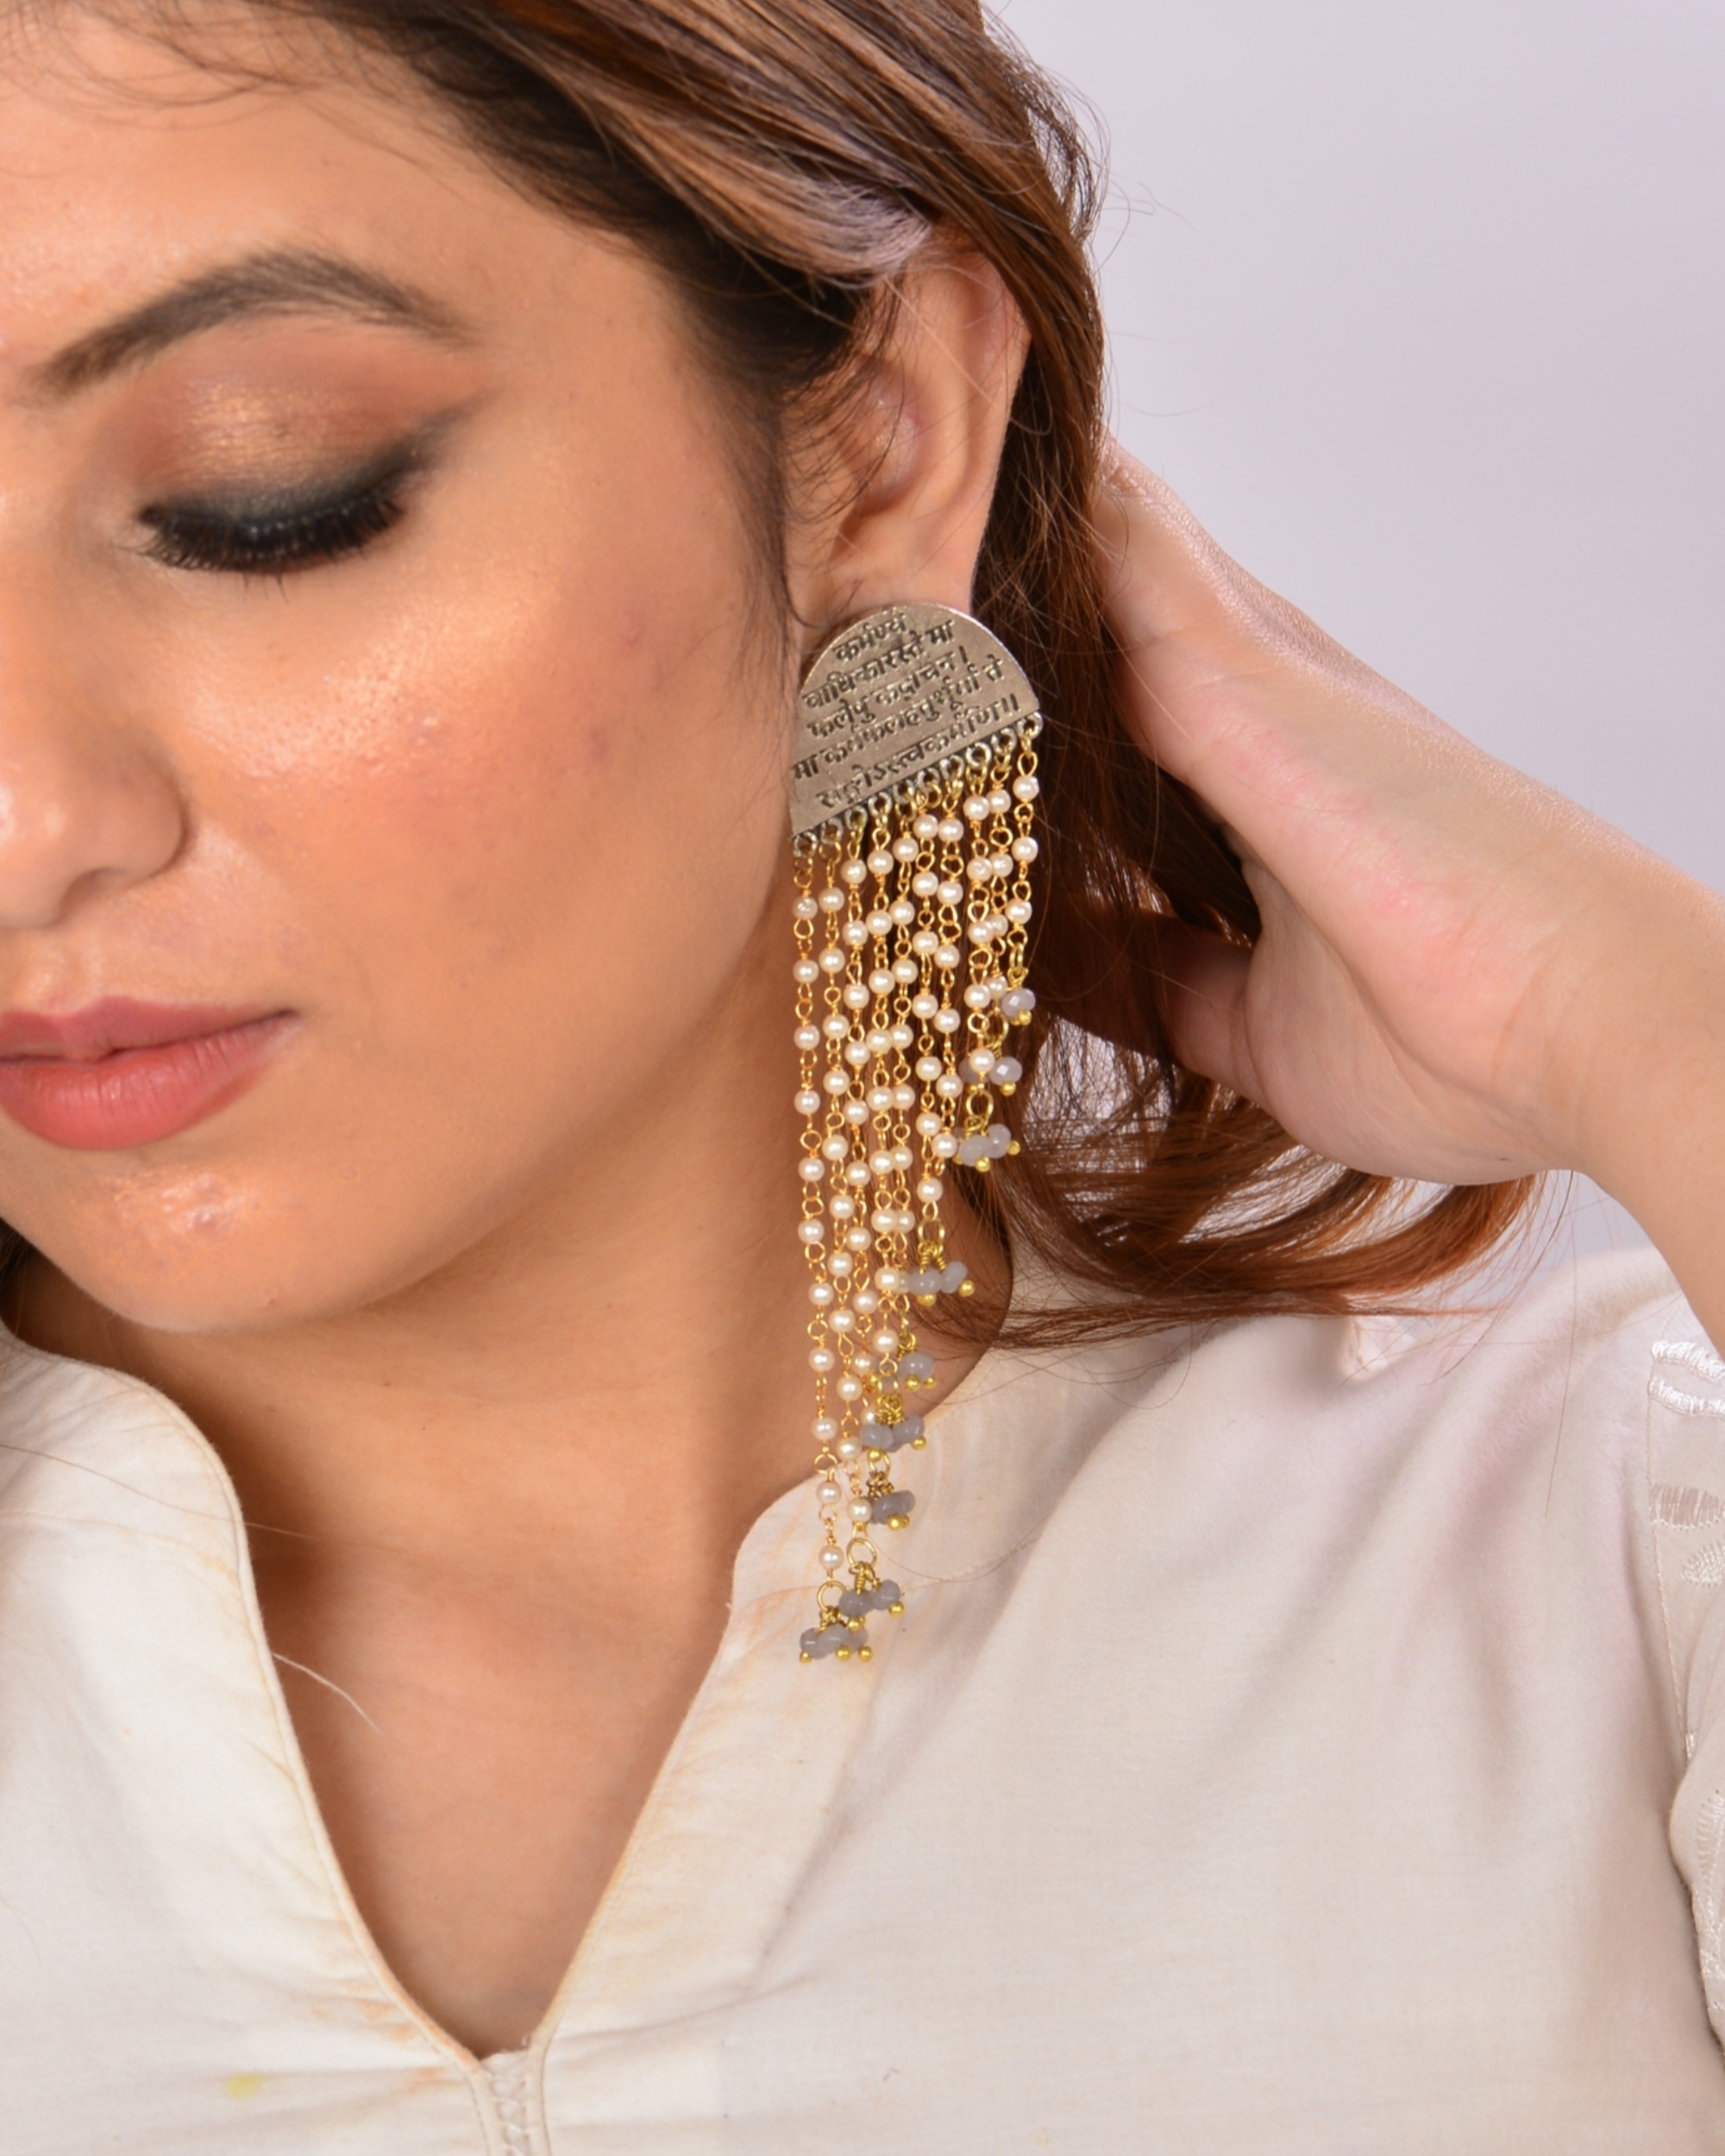 Pearls and beads waterfall mantra earrings